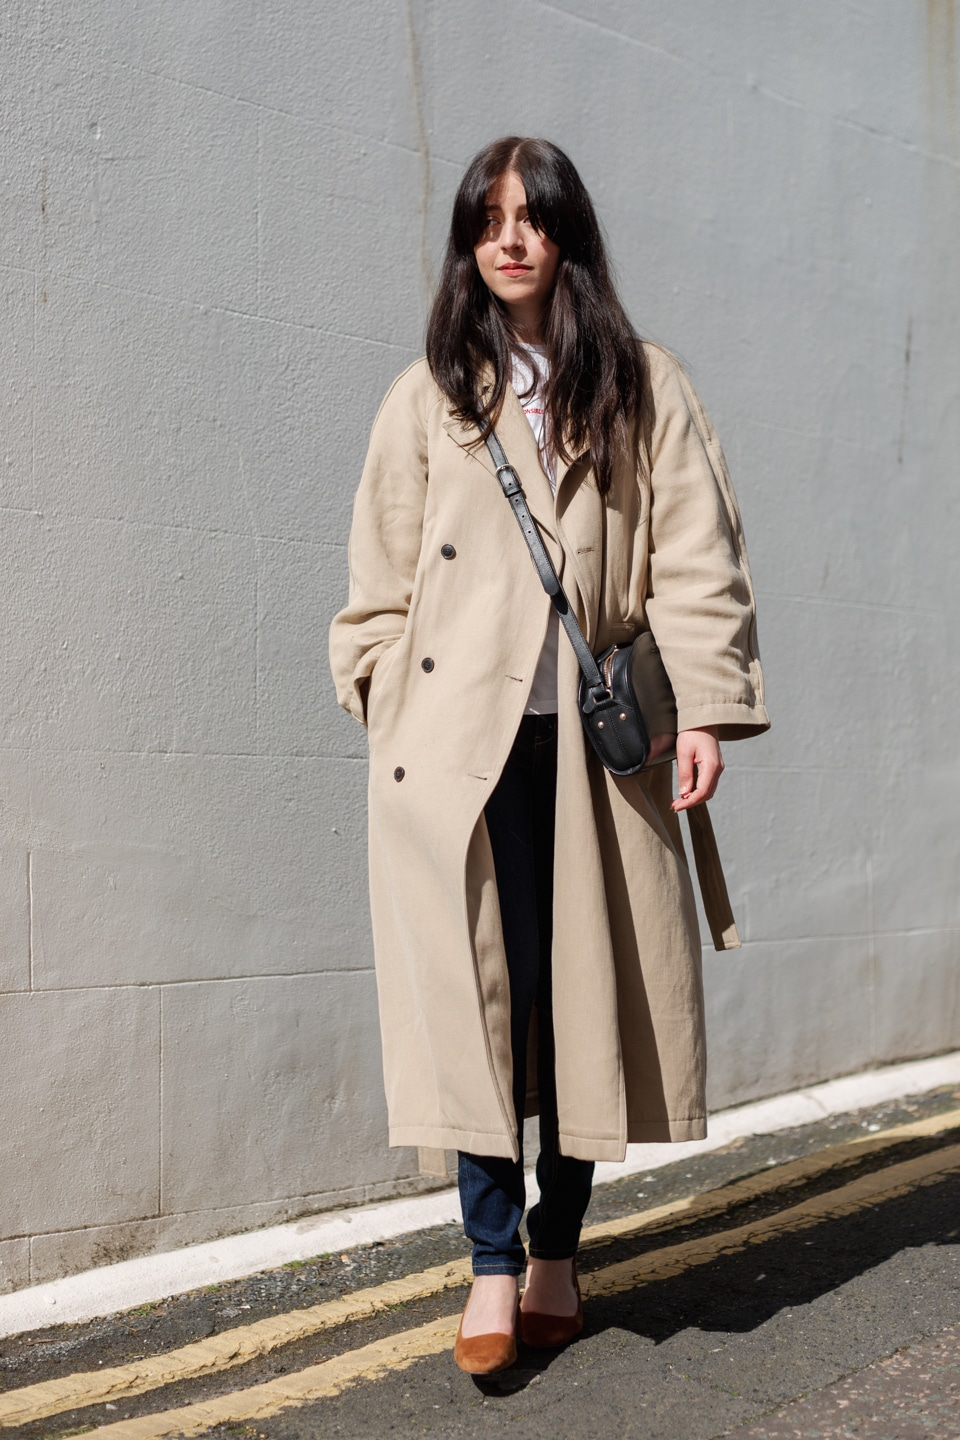 Besma wears circular jeans with second-hand coat, bag, and shoes